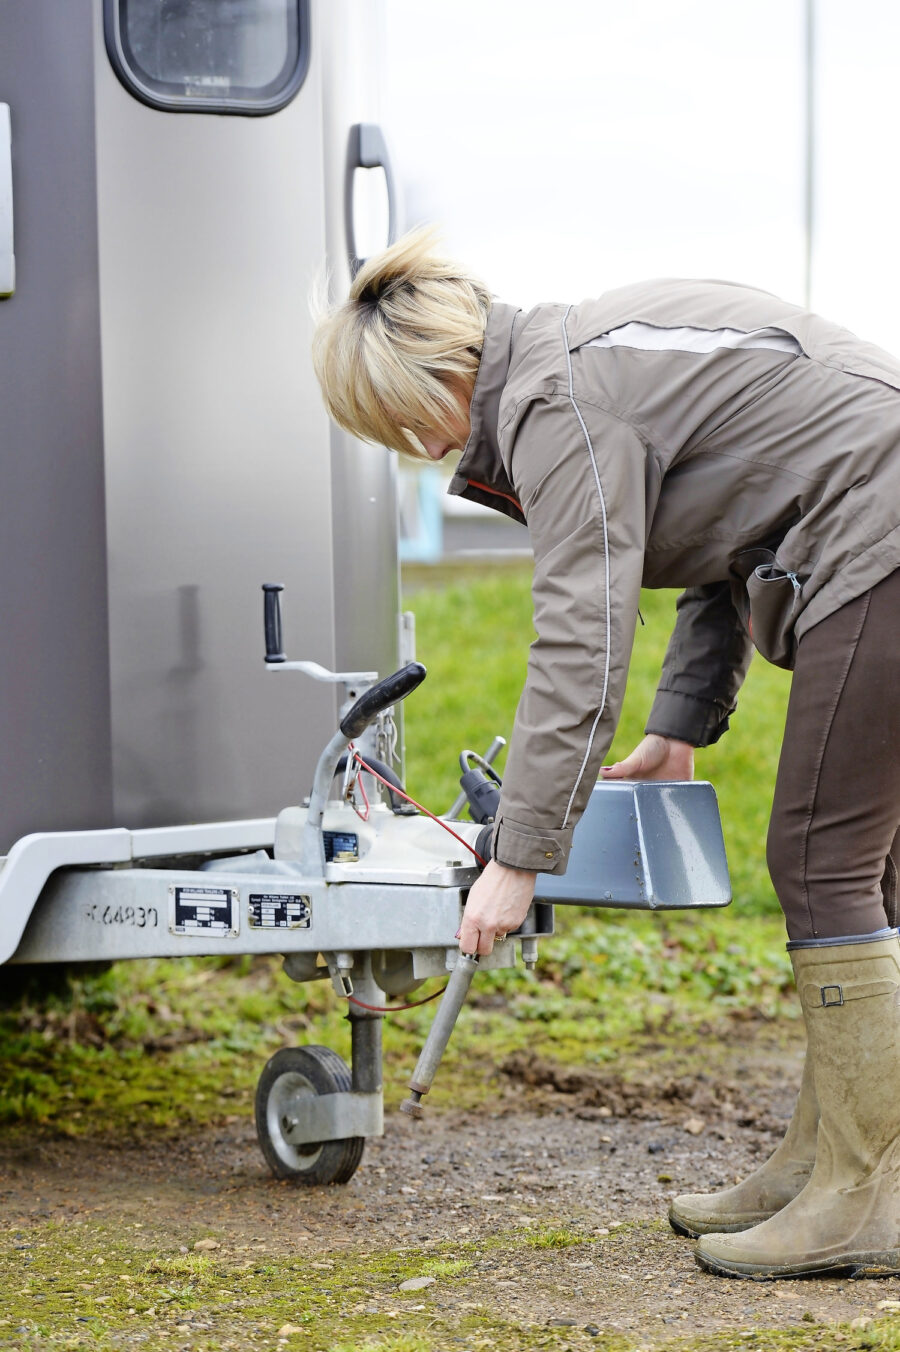 Buying a second hand horse trailer: the right questions to ask and important checks to make